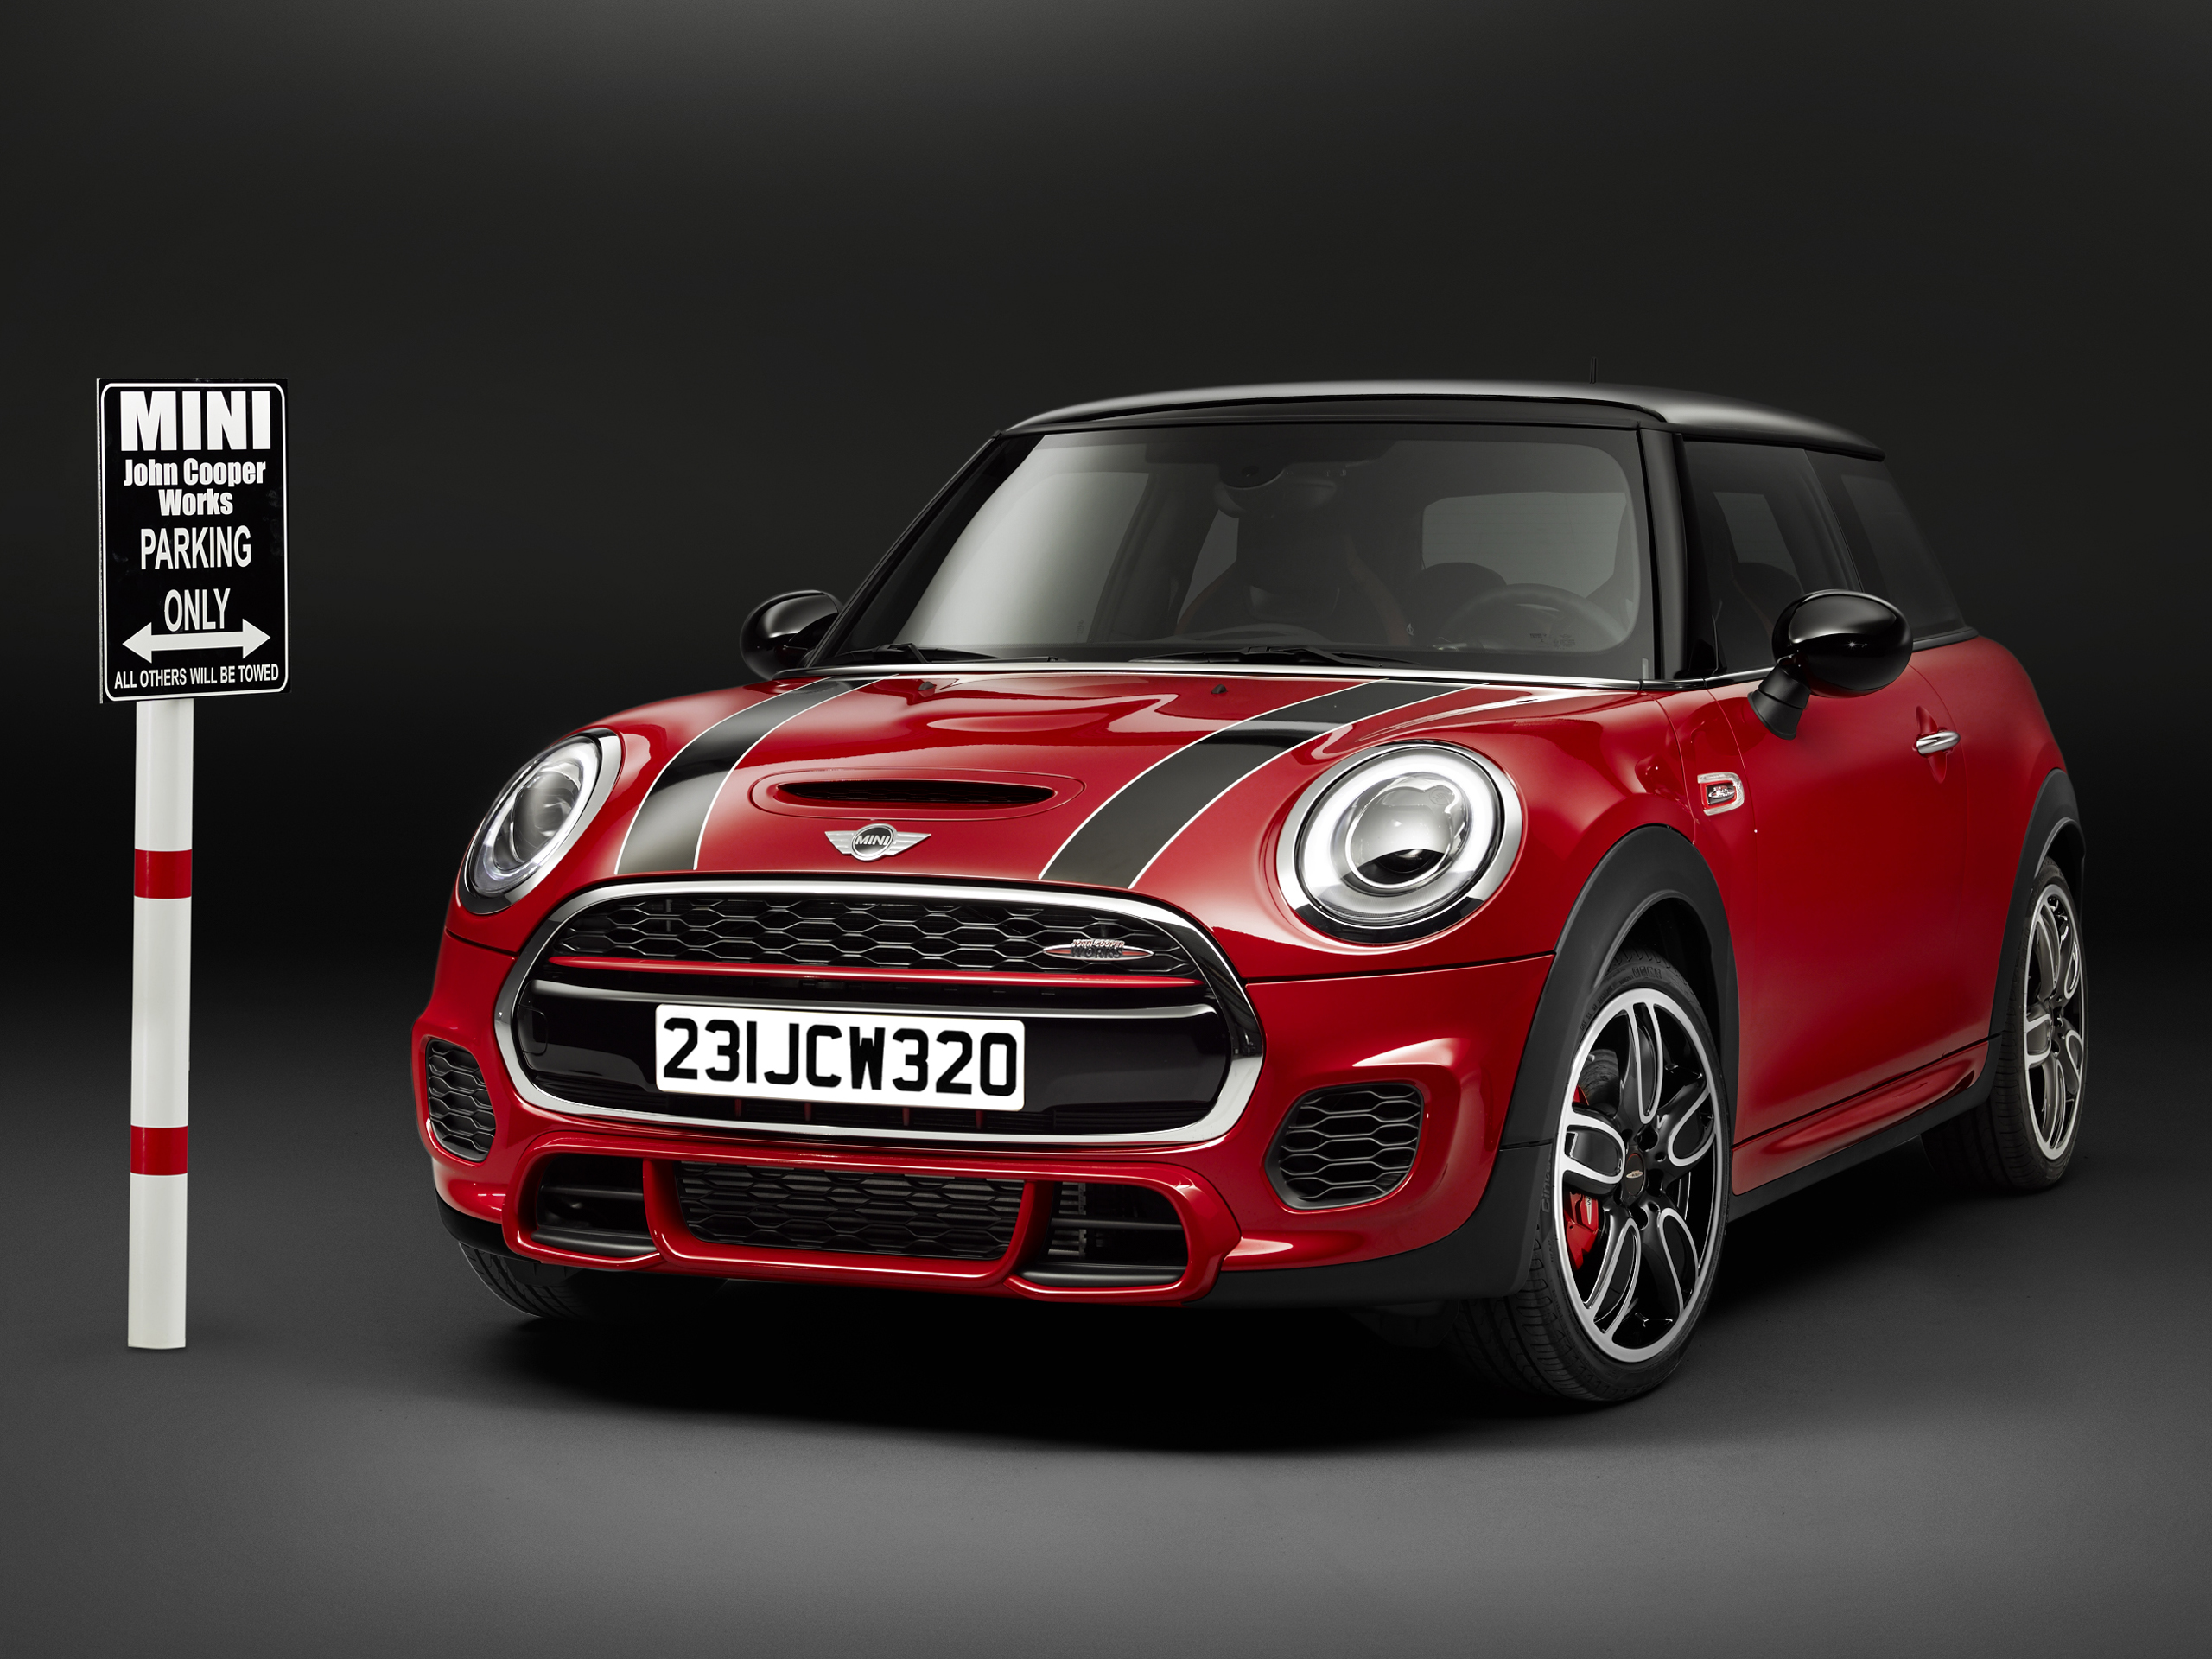 mini john cooper works 2015 preis motor. Black Bedroom Furniture Sets. Home Design Ideas